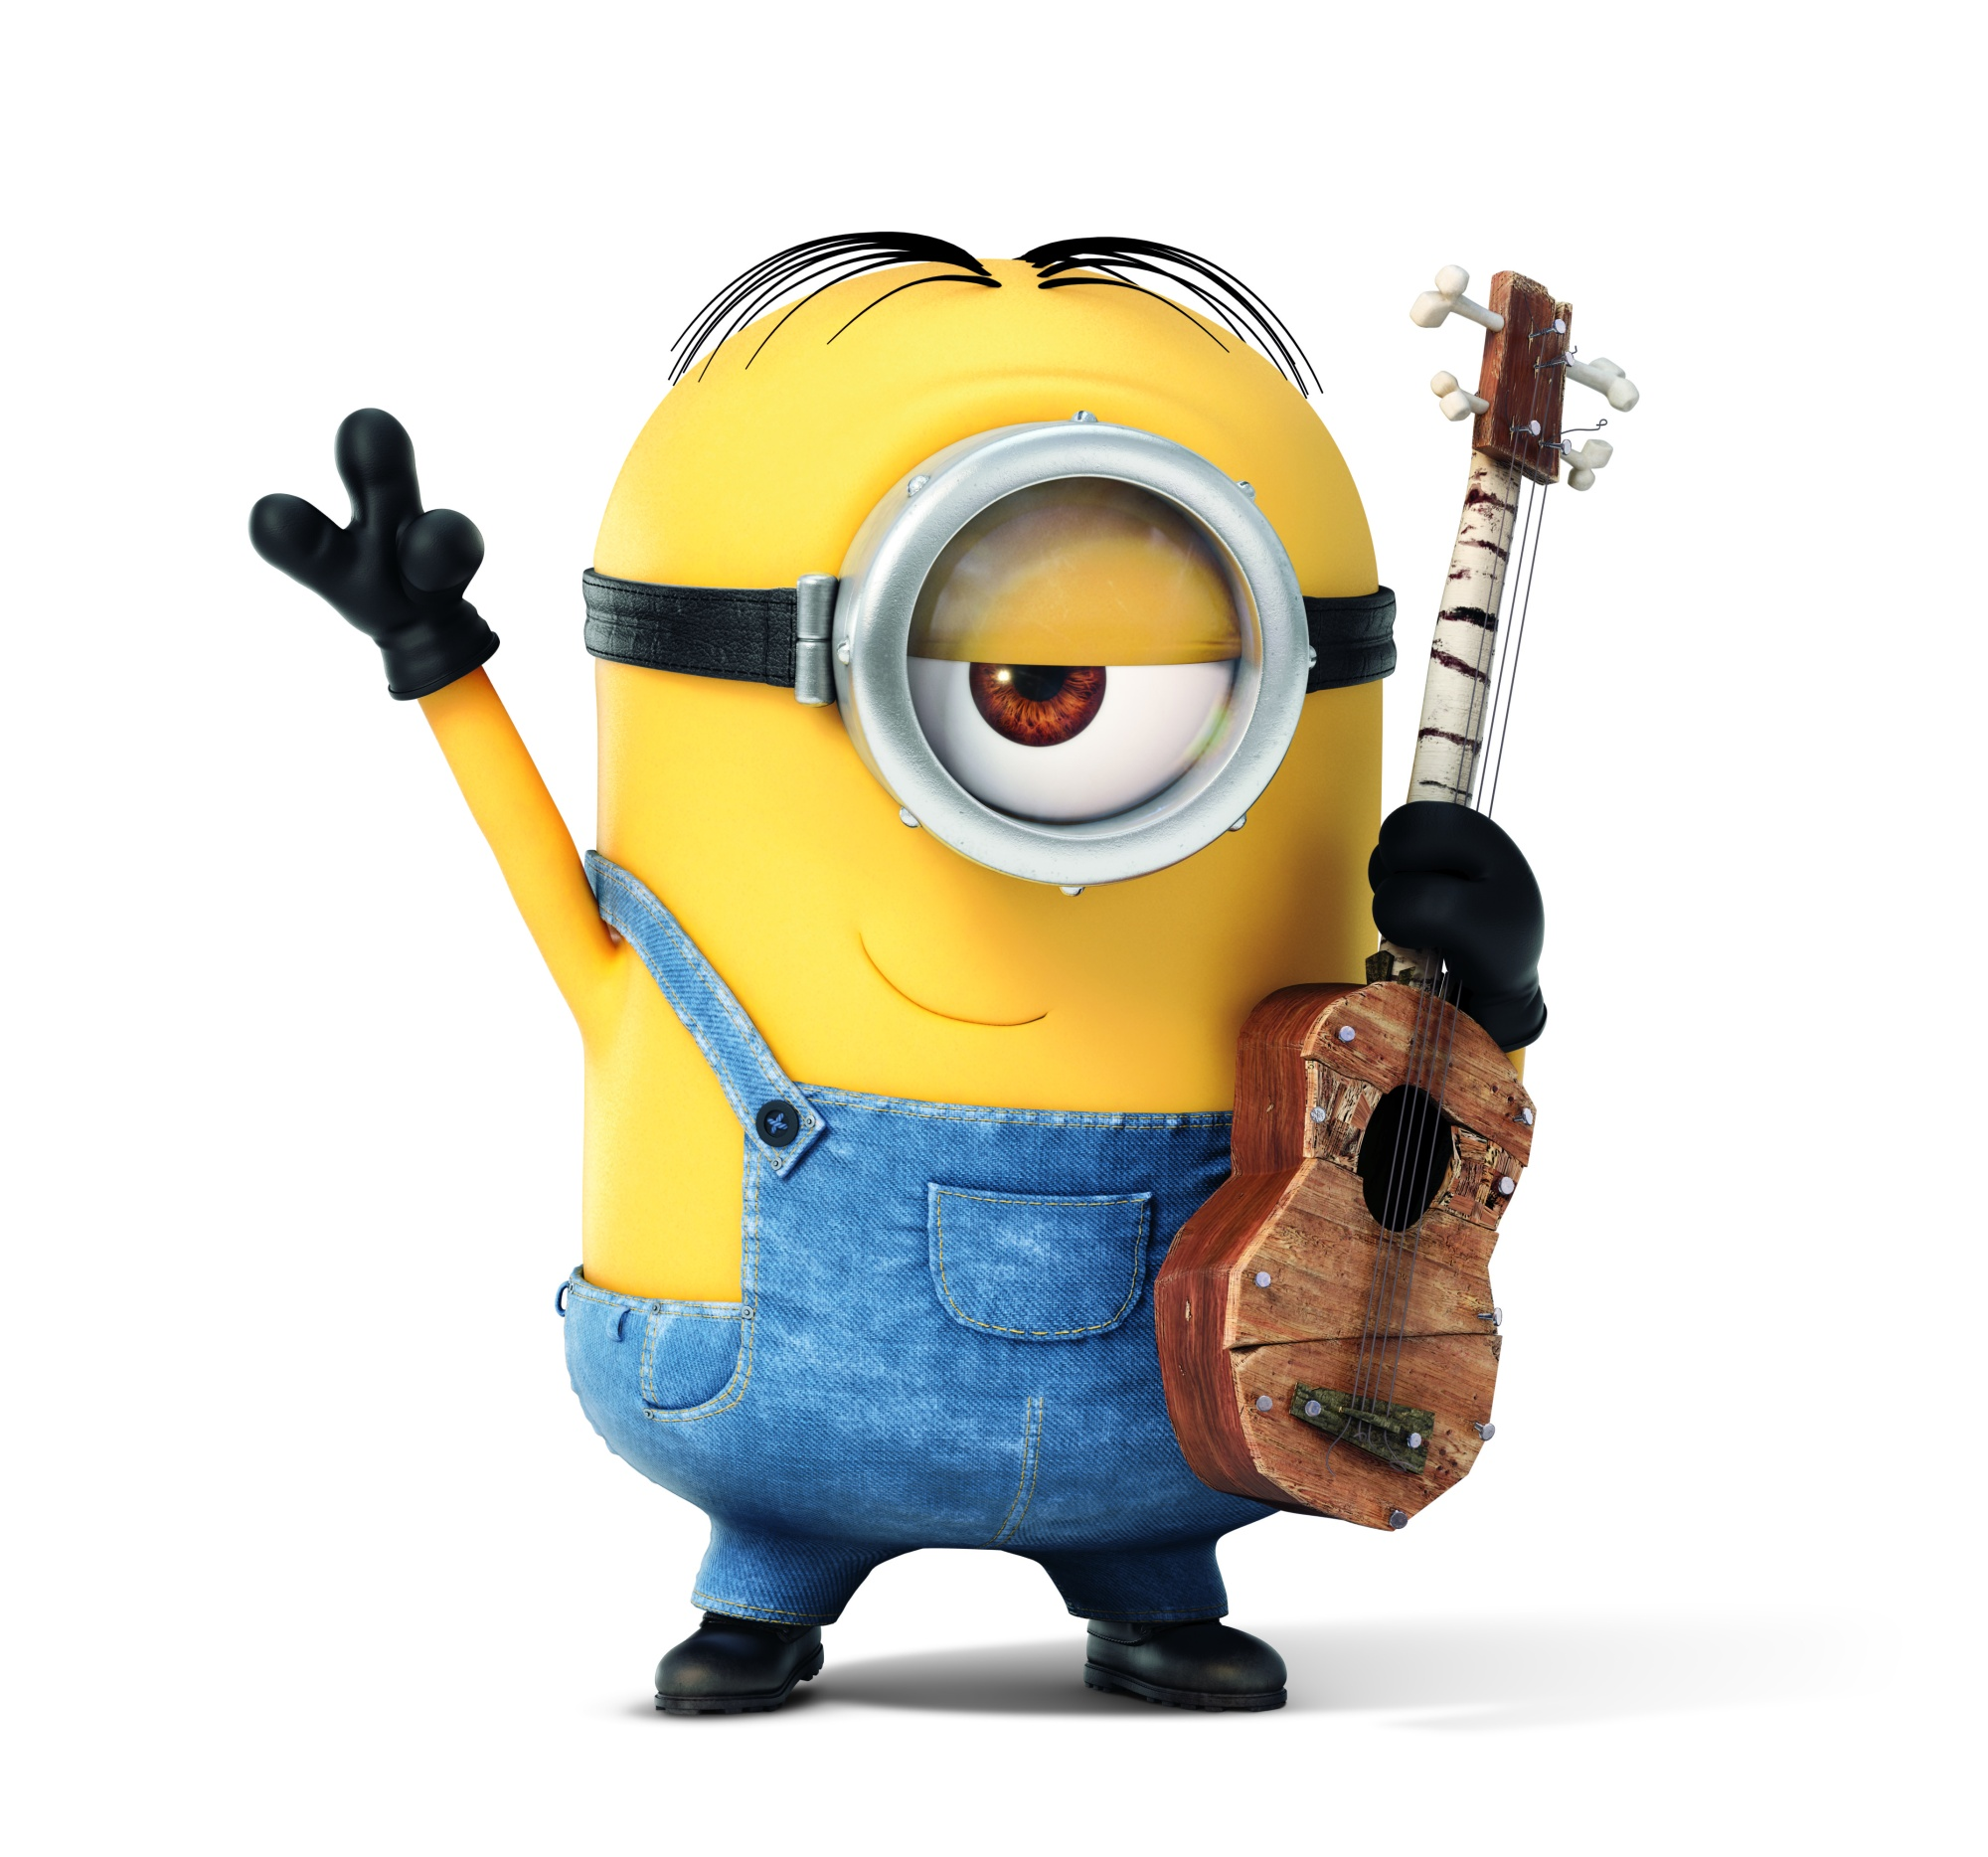 [Movie Review] Minions